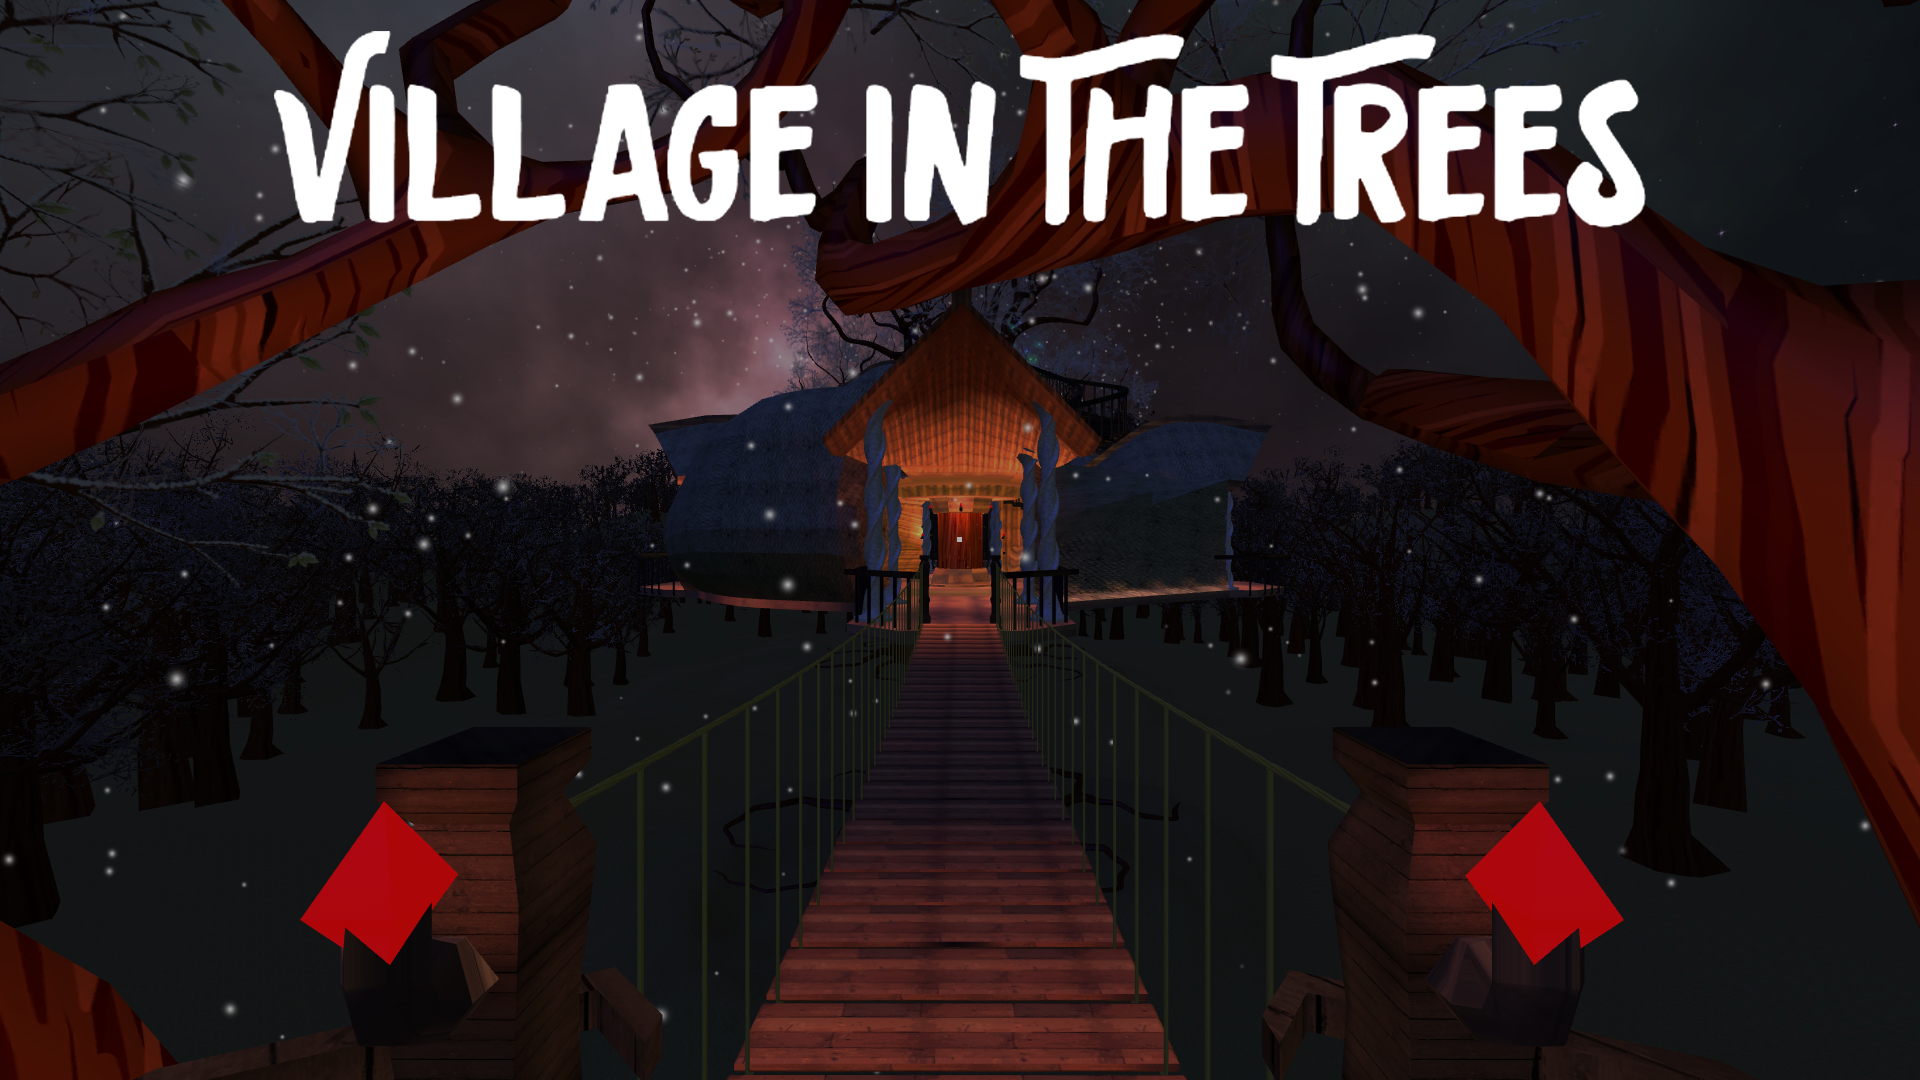 Village In The Trees